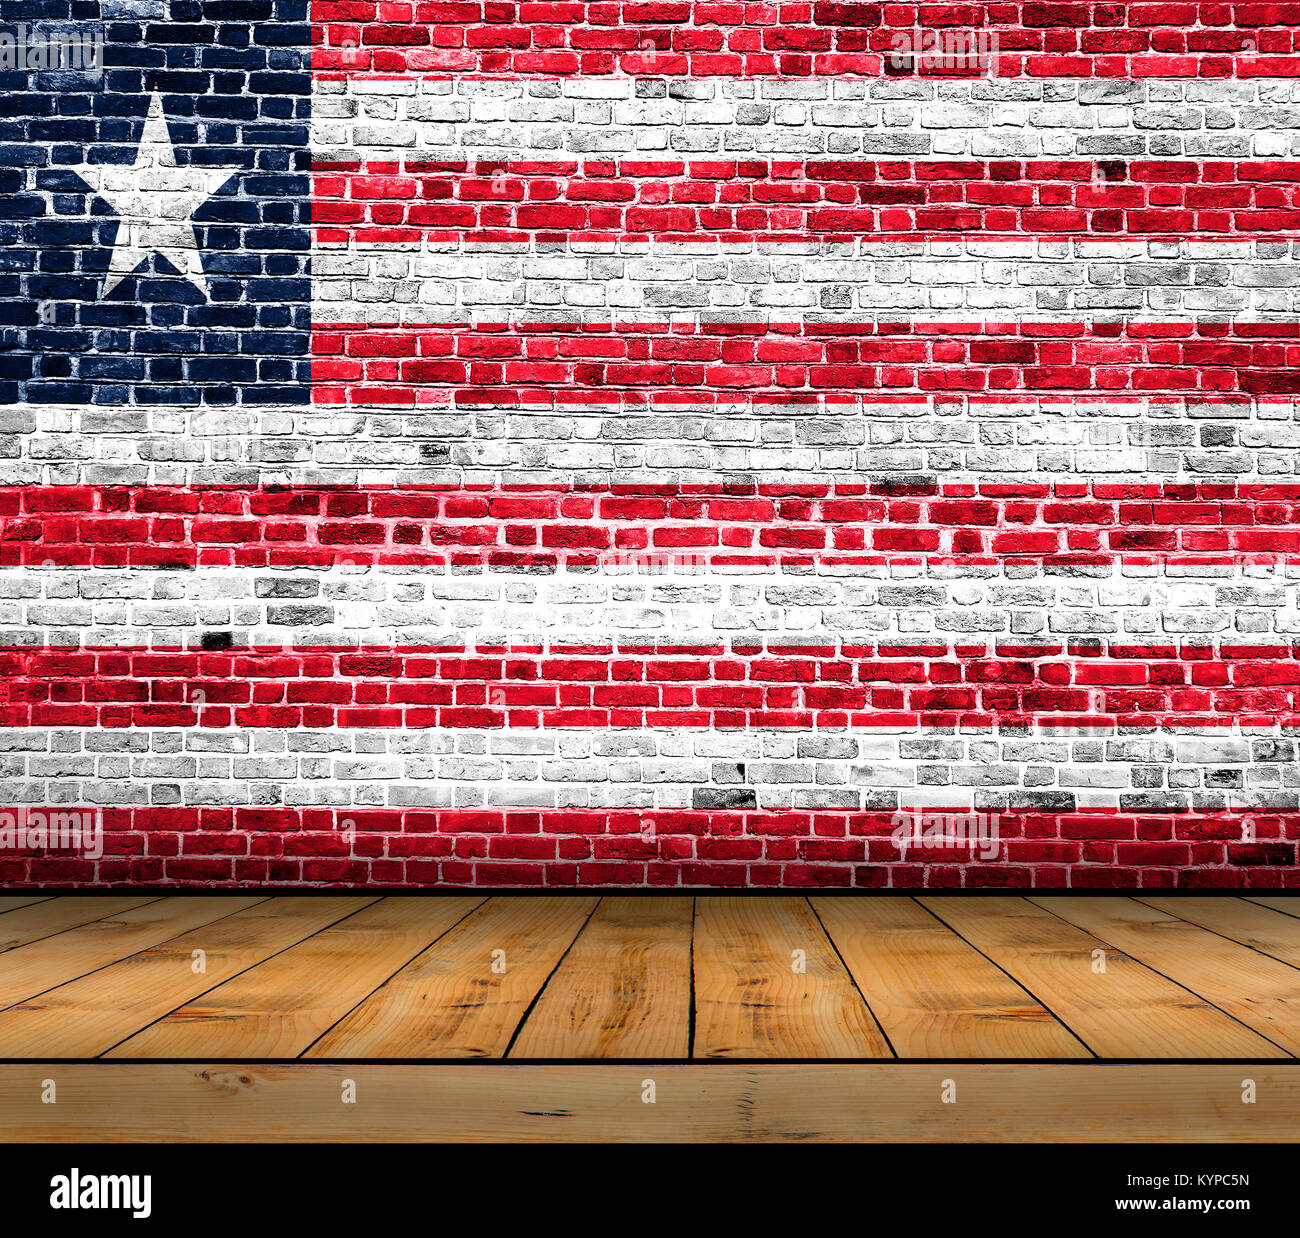 Liberia flag painted on brick wall with wooden floor - Stock Image